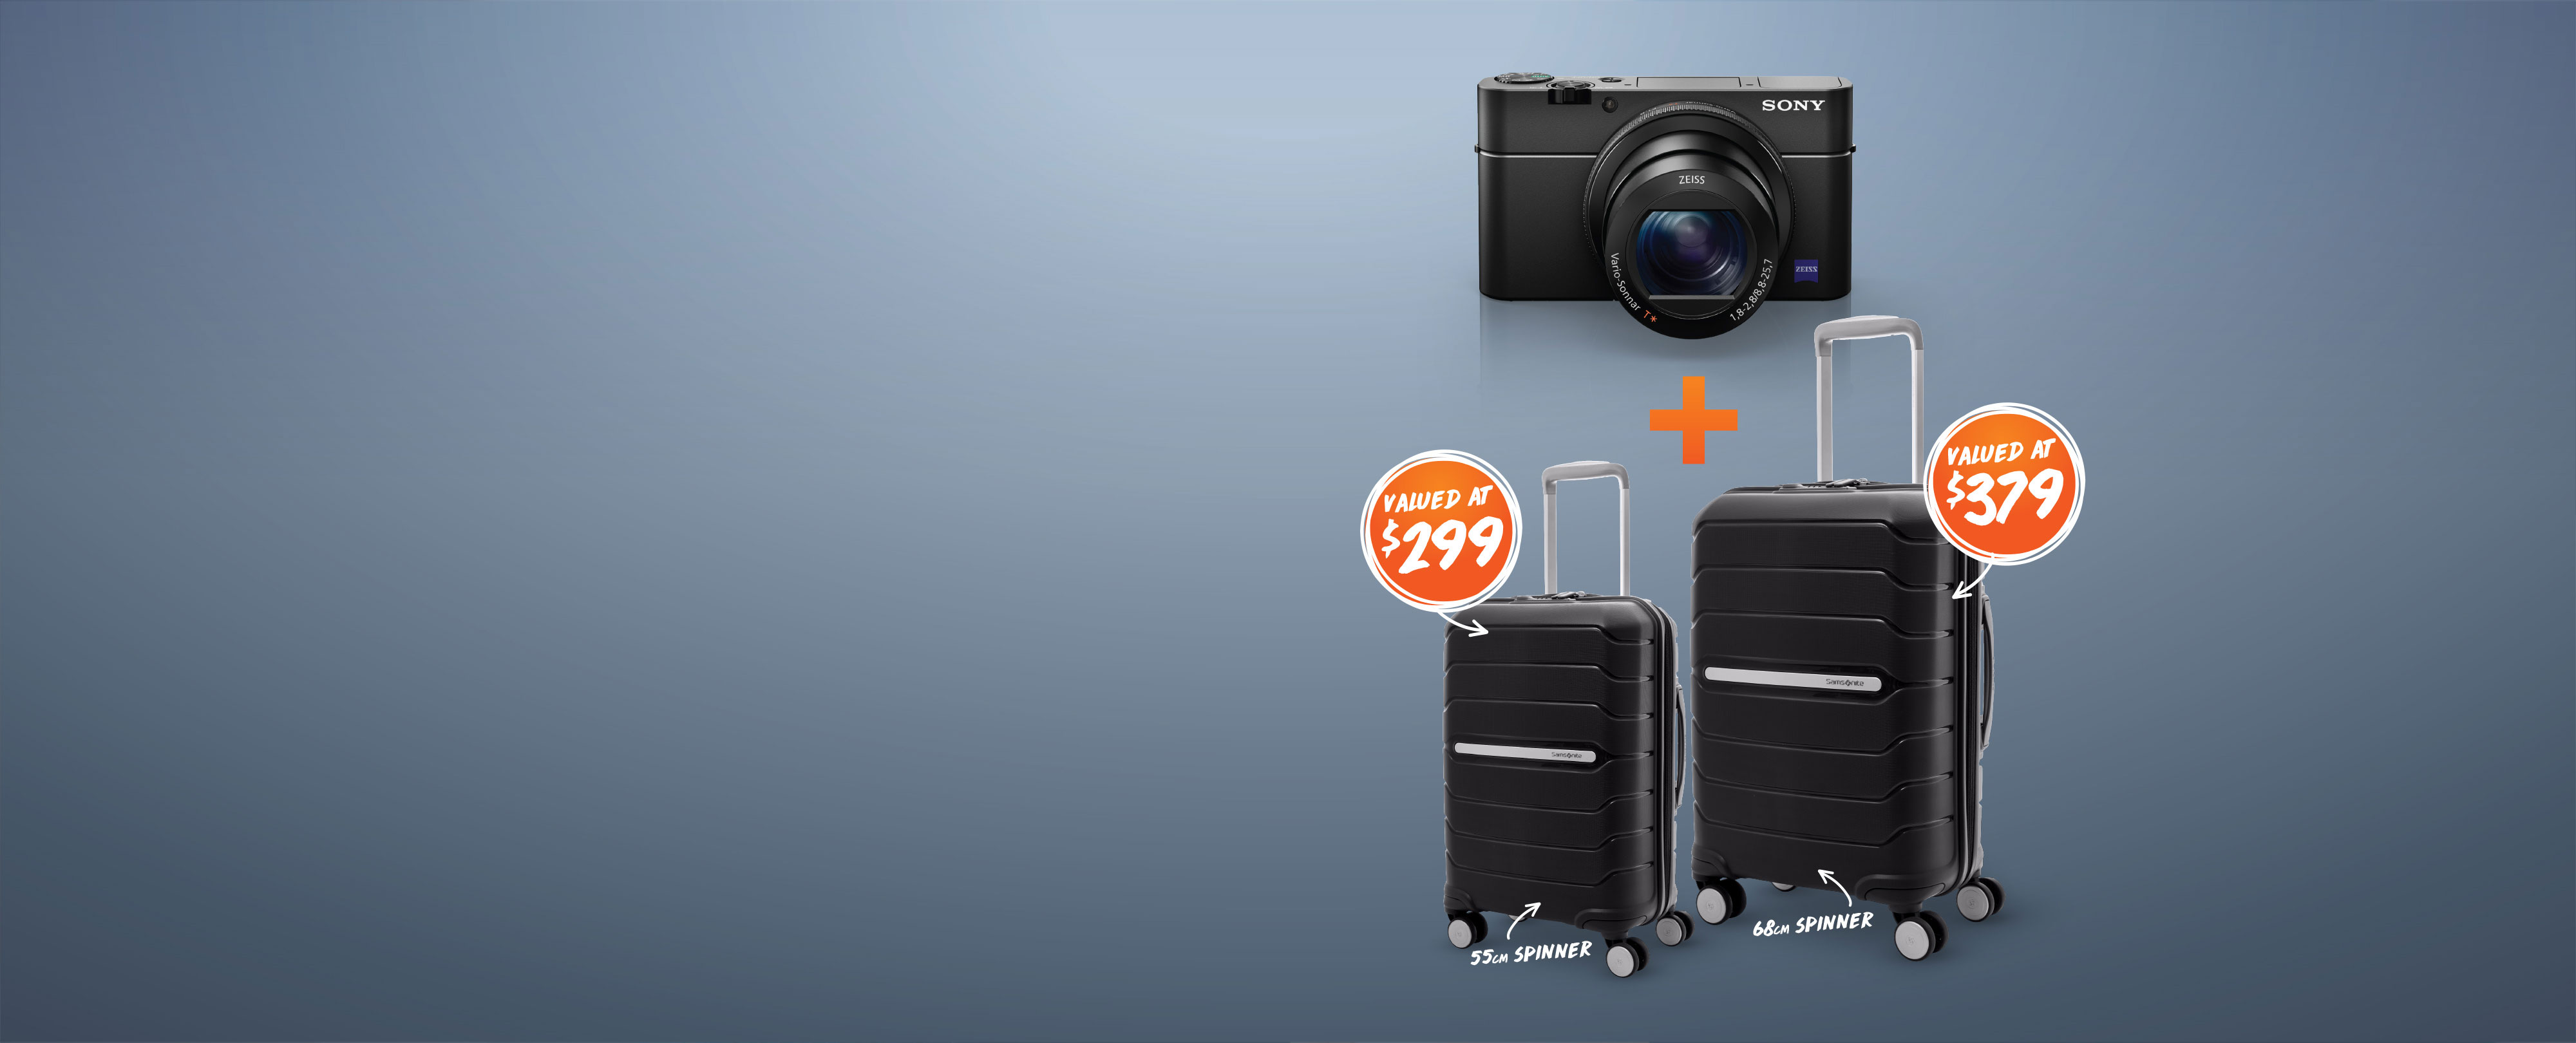 Sony - Imaging Promotion